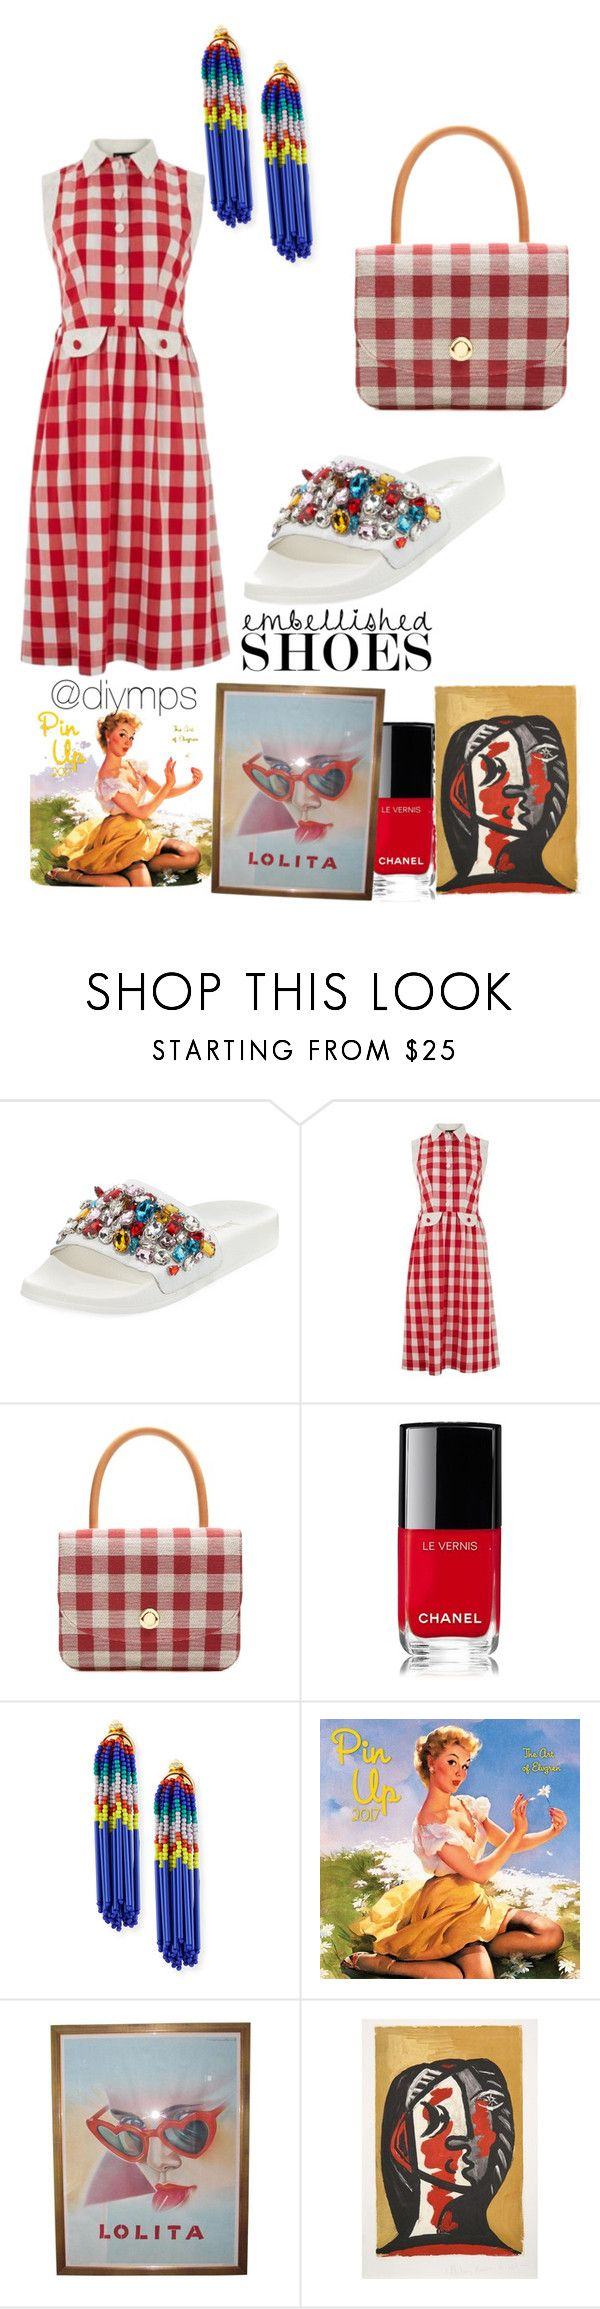 """😍"" by diymps on Polyvore featuring Neiman Marcus, Lowie, Mansur Gavriel, Chanel and Lele Sadoughi"